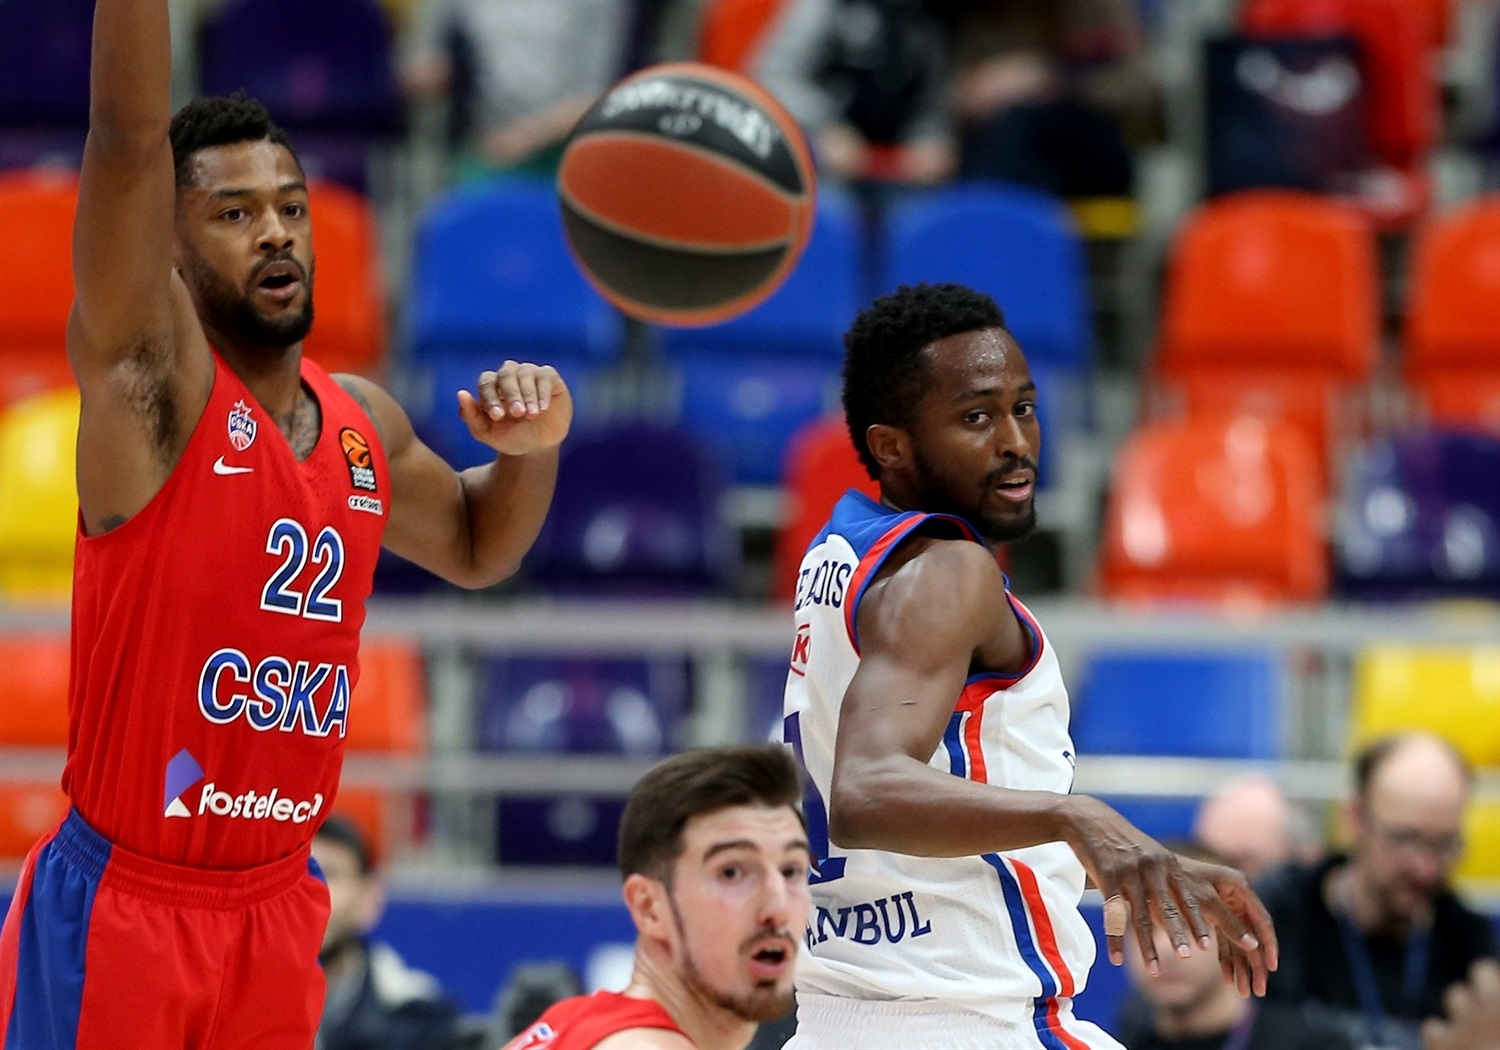 efes-cska-euroleague-basketball-euroliga